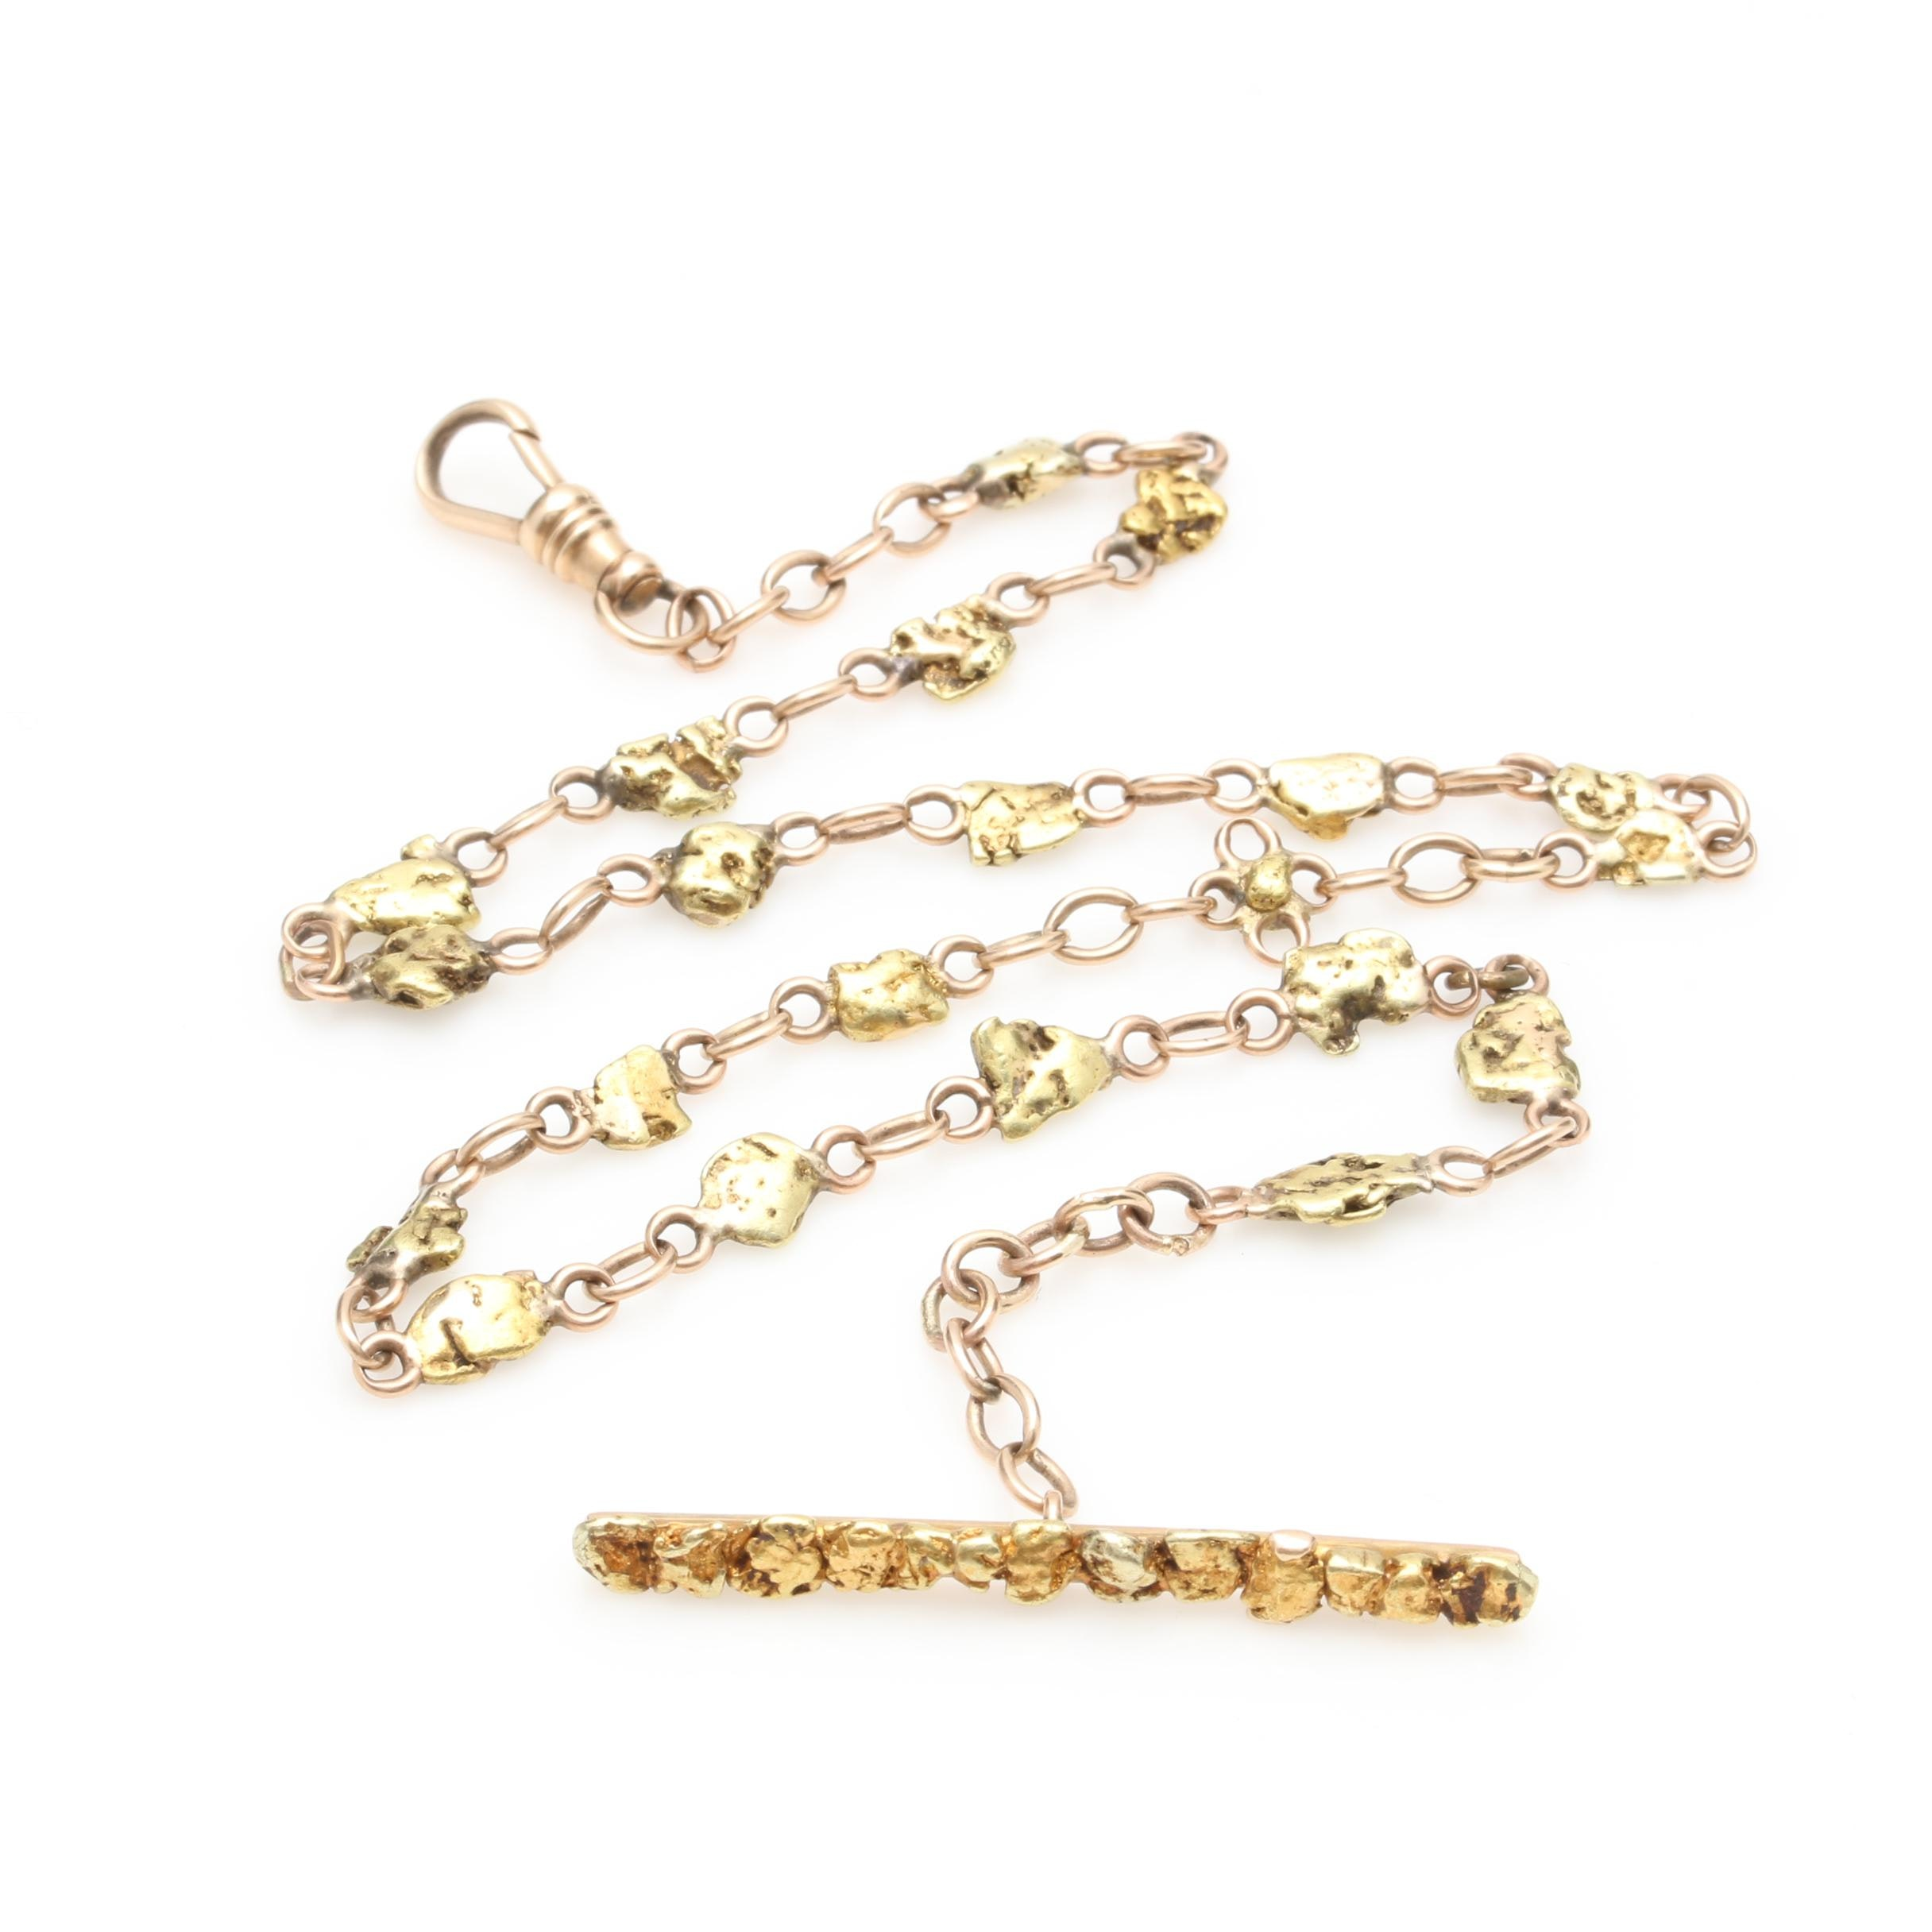 10K Yellow Gold Necklace with 18K Natural Nuggets